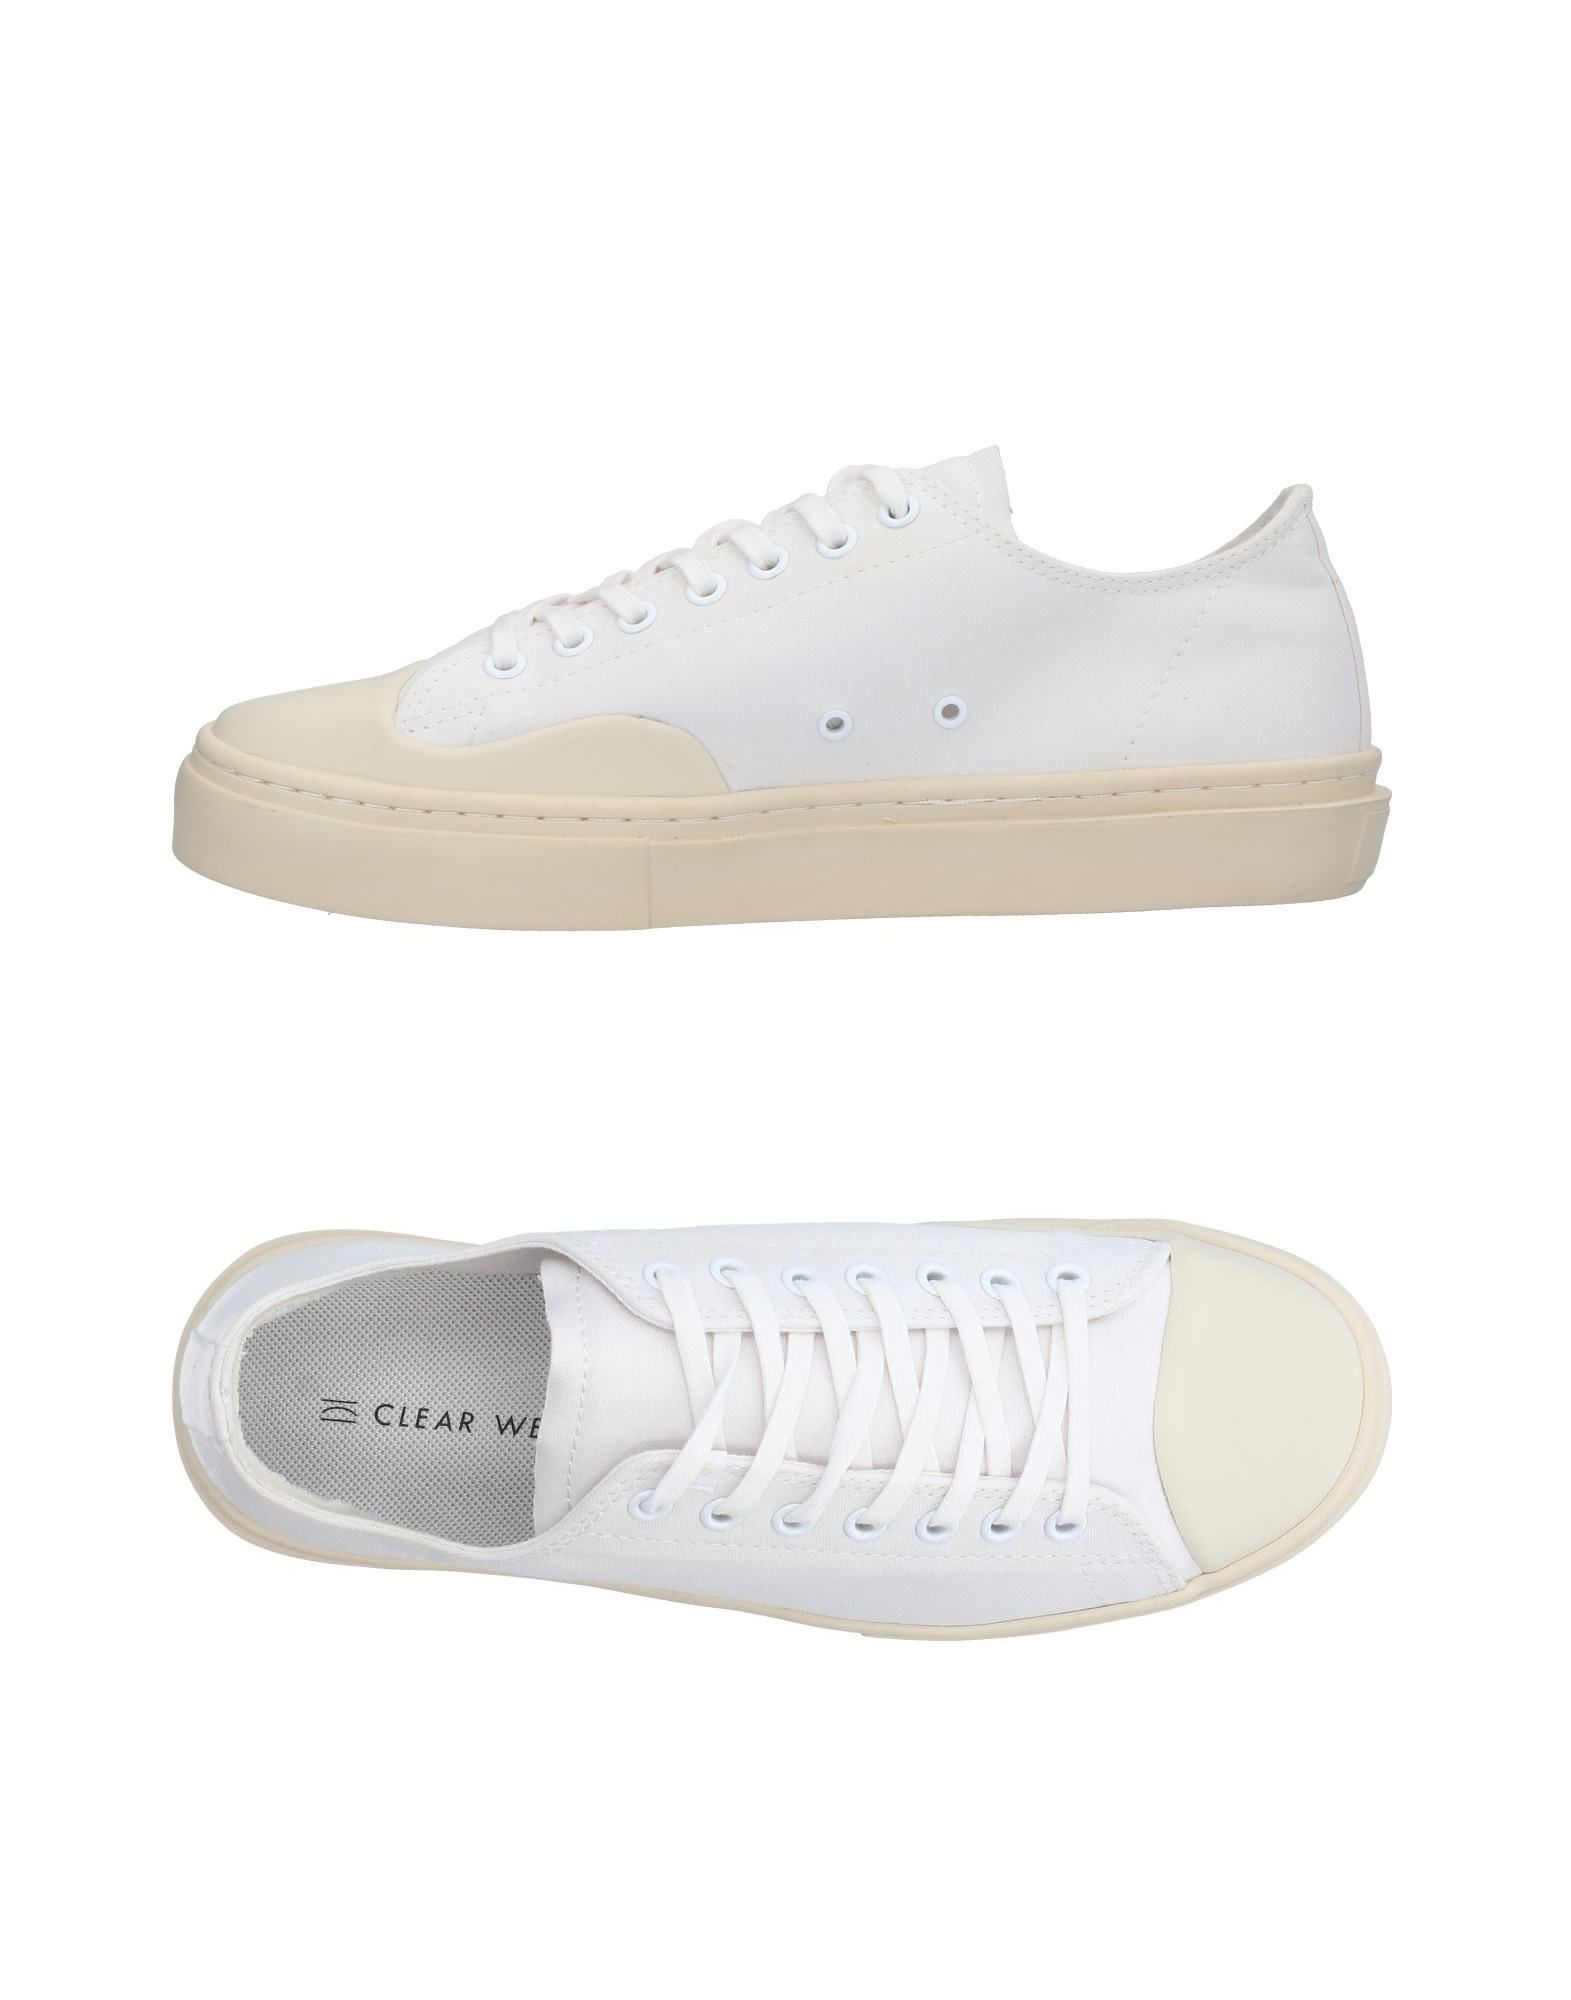 Clear Weather Sneakers Sneakers - Men Clear Weather Sneakers Sneakers online on  Canada - 11370186TO d439e5